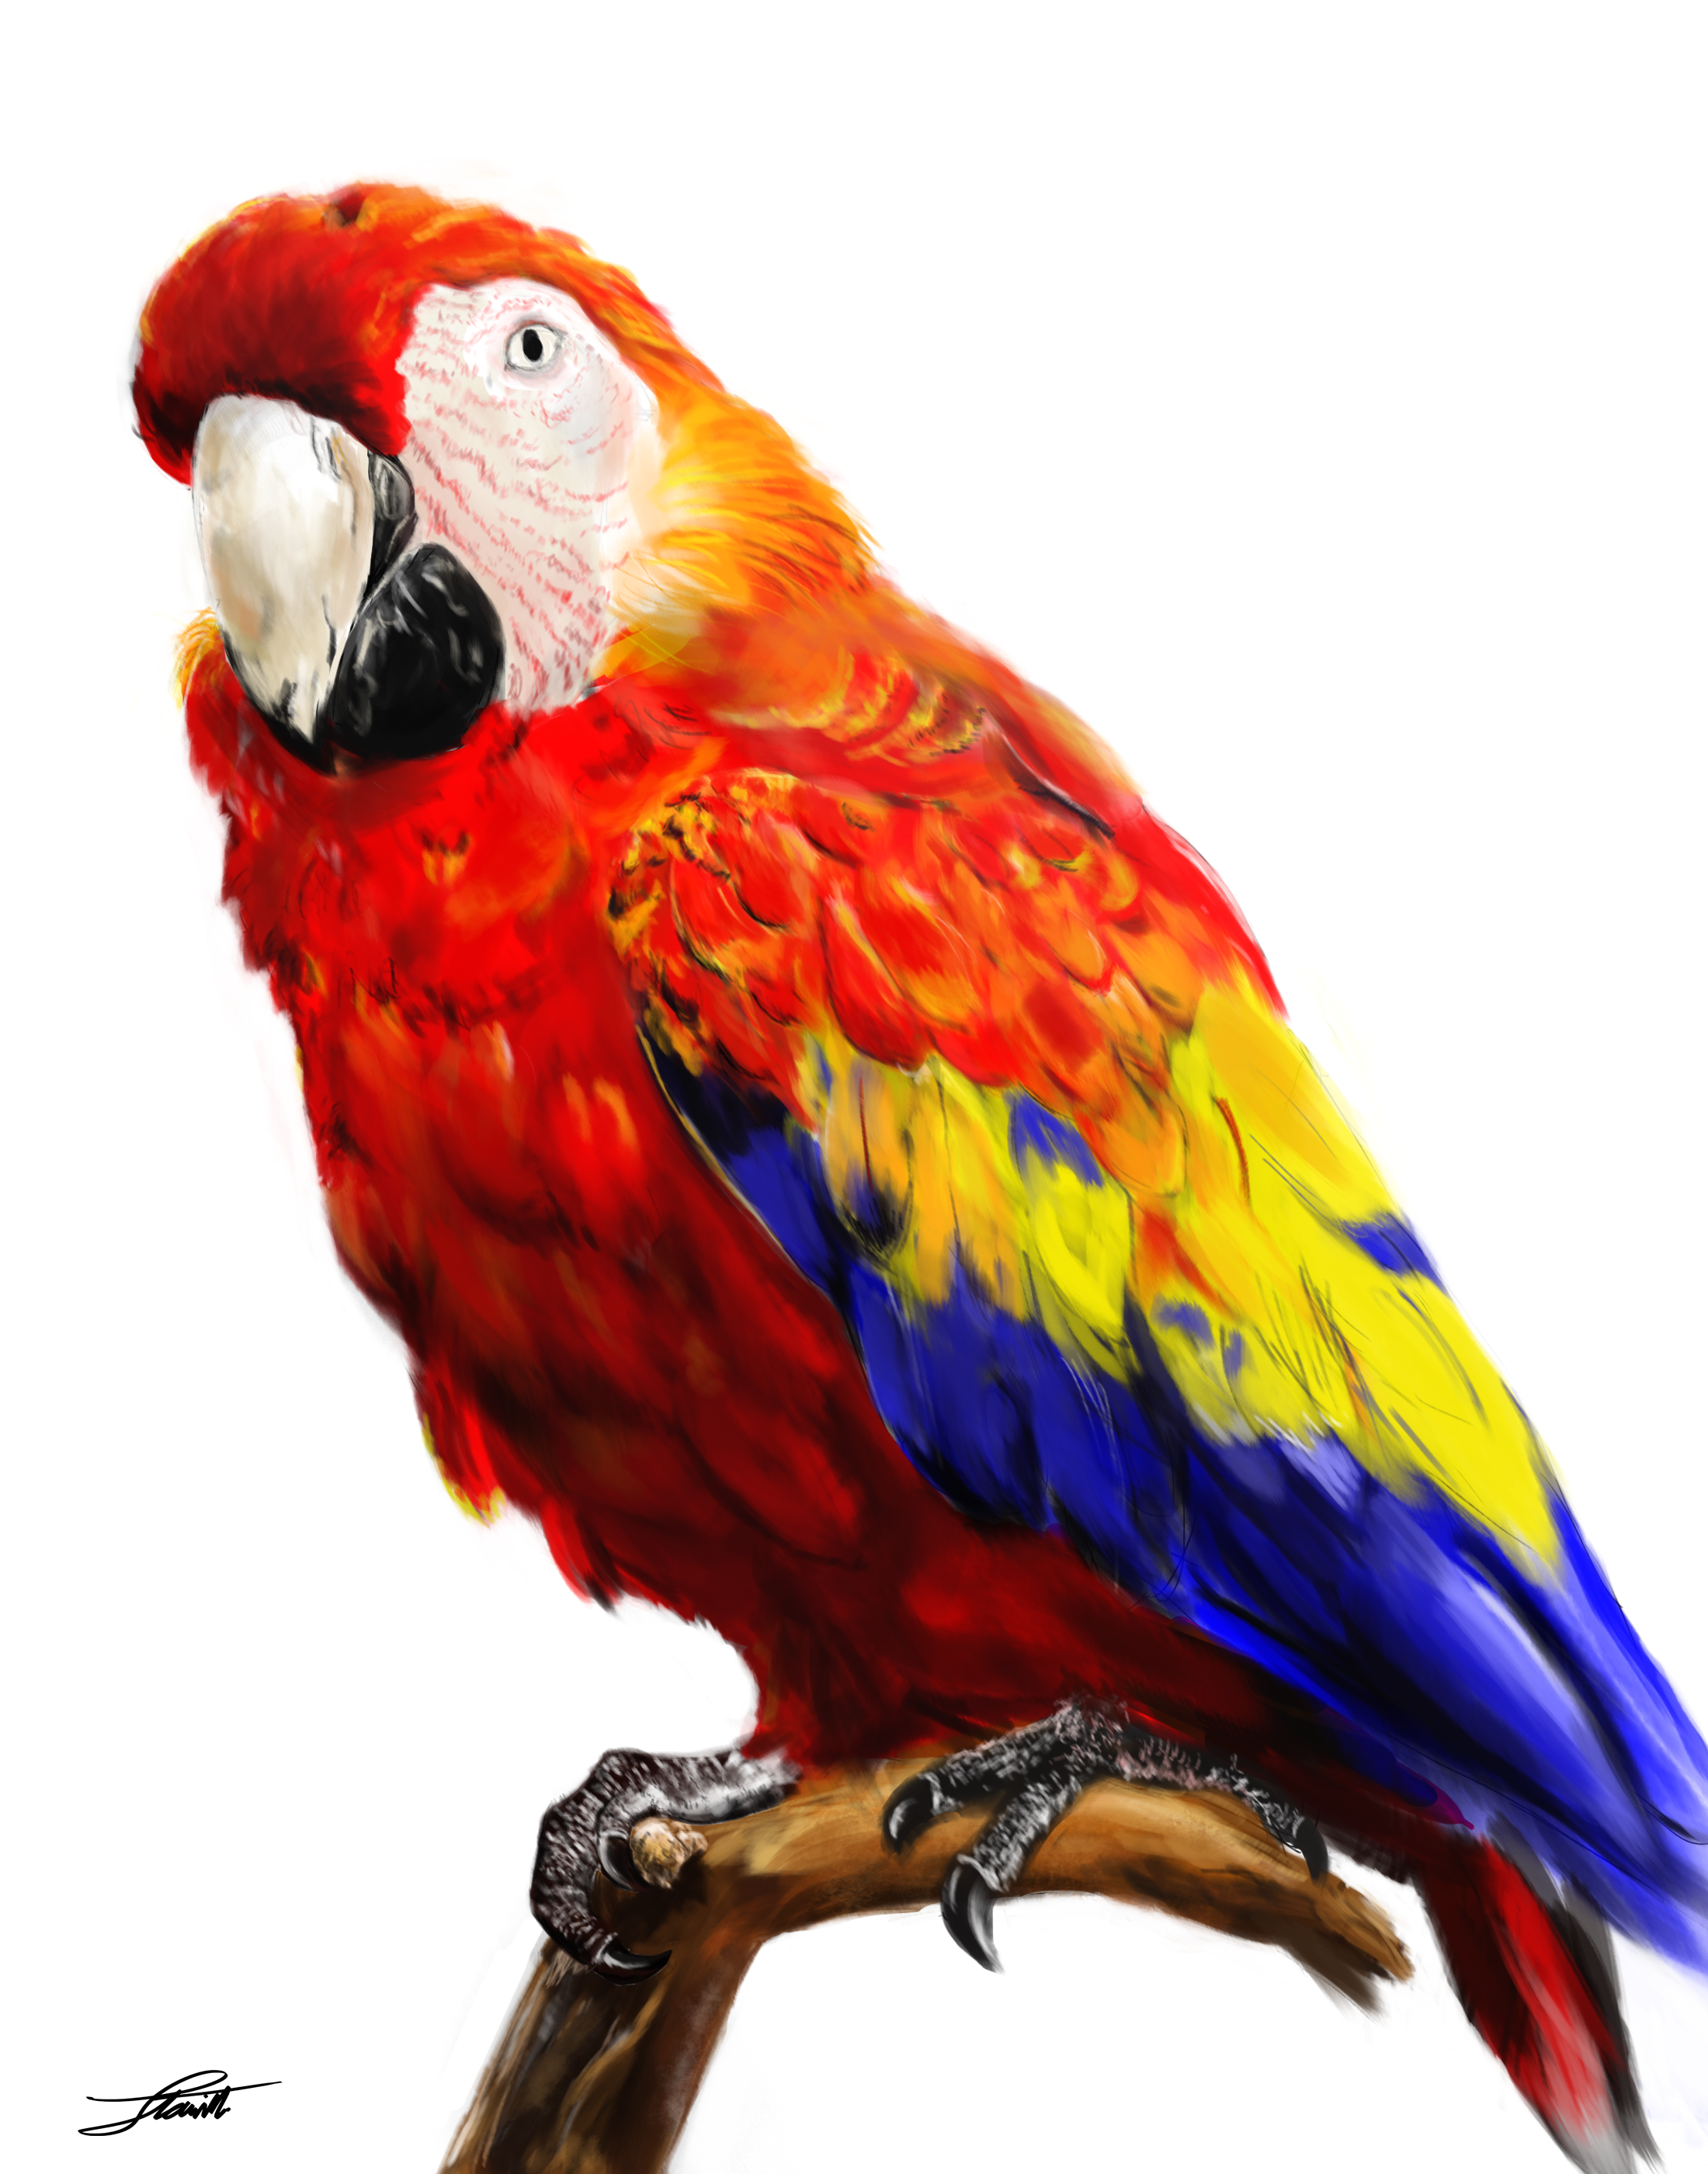 Parrot Png #22838 - Free Icons And PNG Backgrounds - Parrot HD PNG